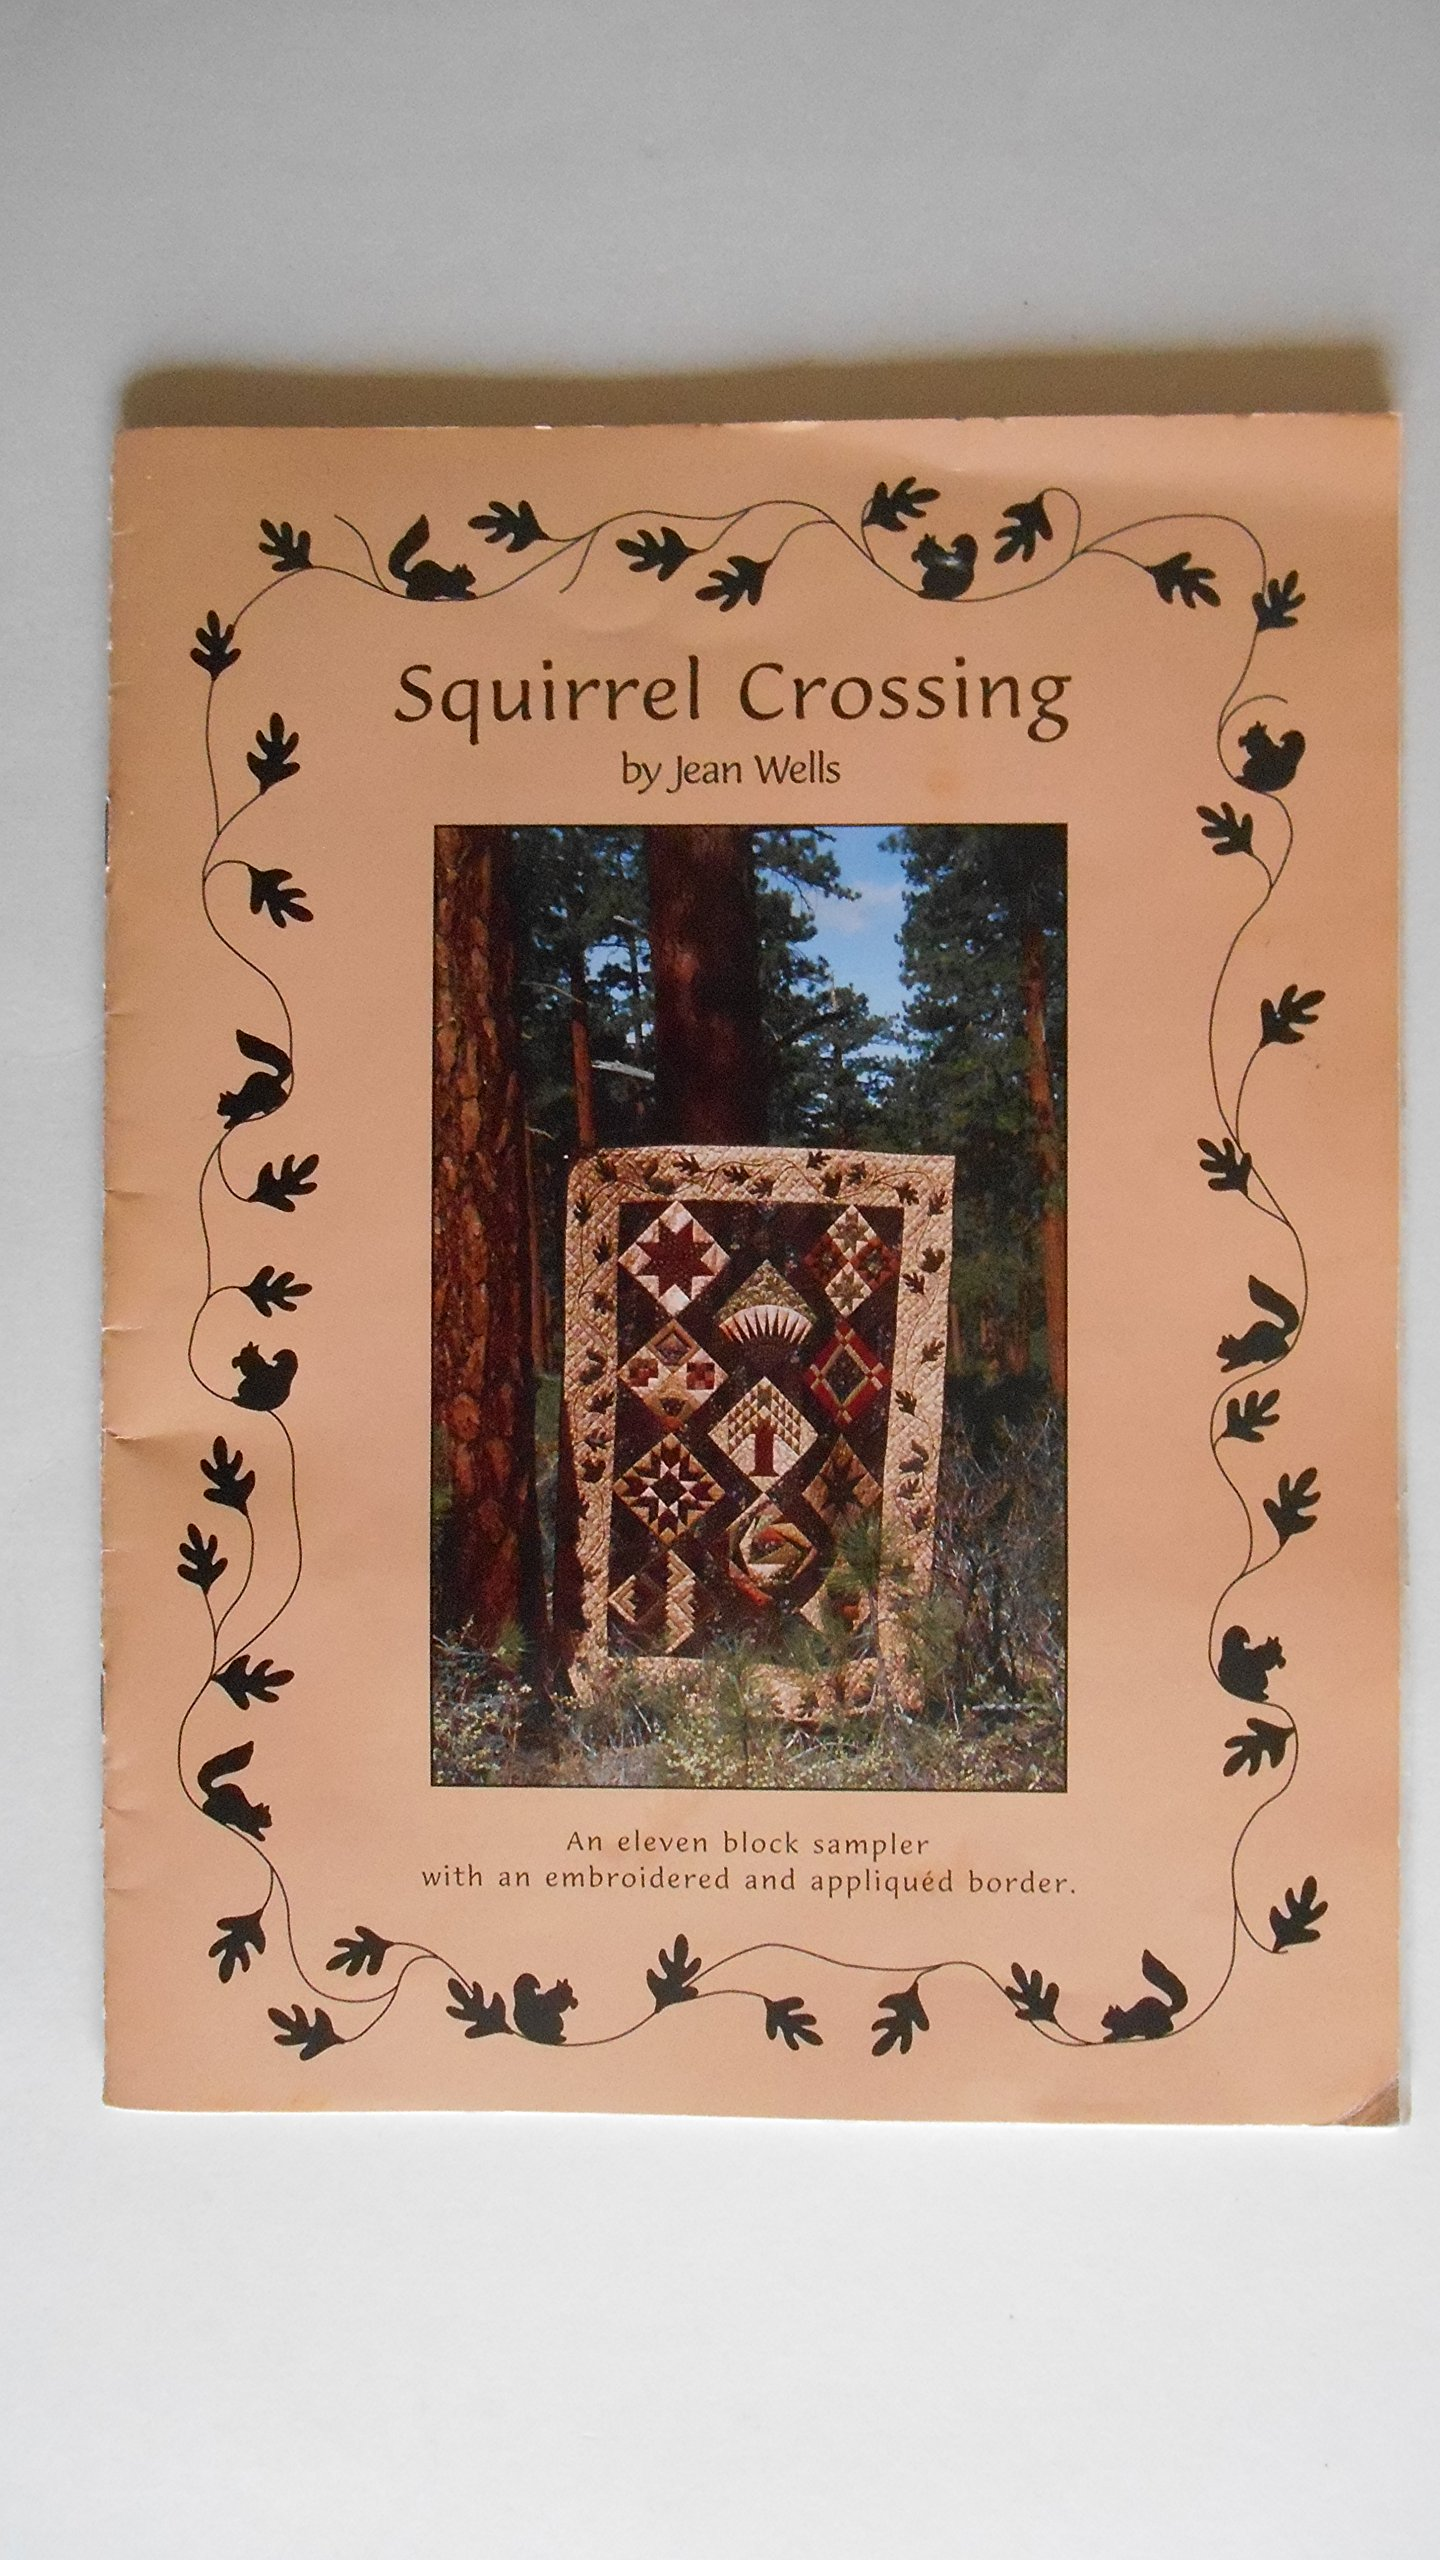 Squirrel Crossing : An Eleven Block Sampler with an Embroidered and Appliqued Border